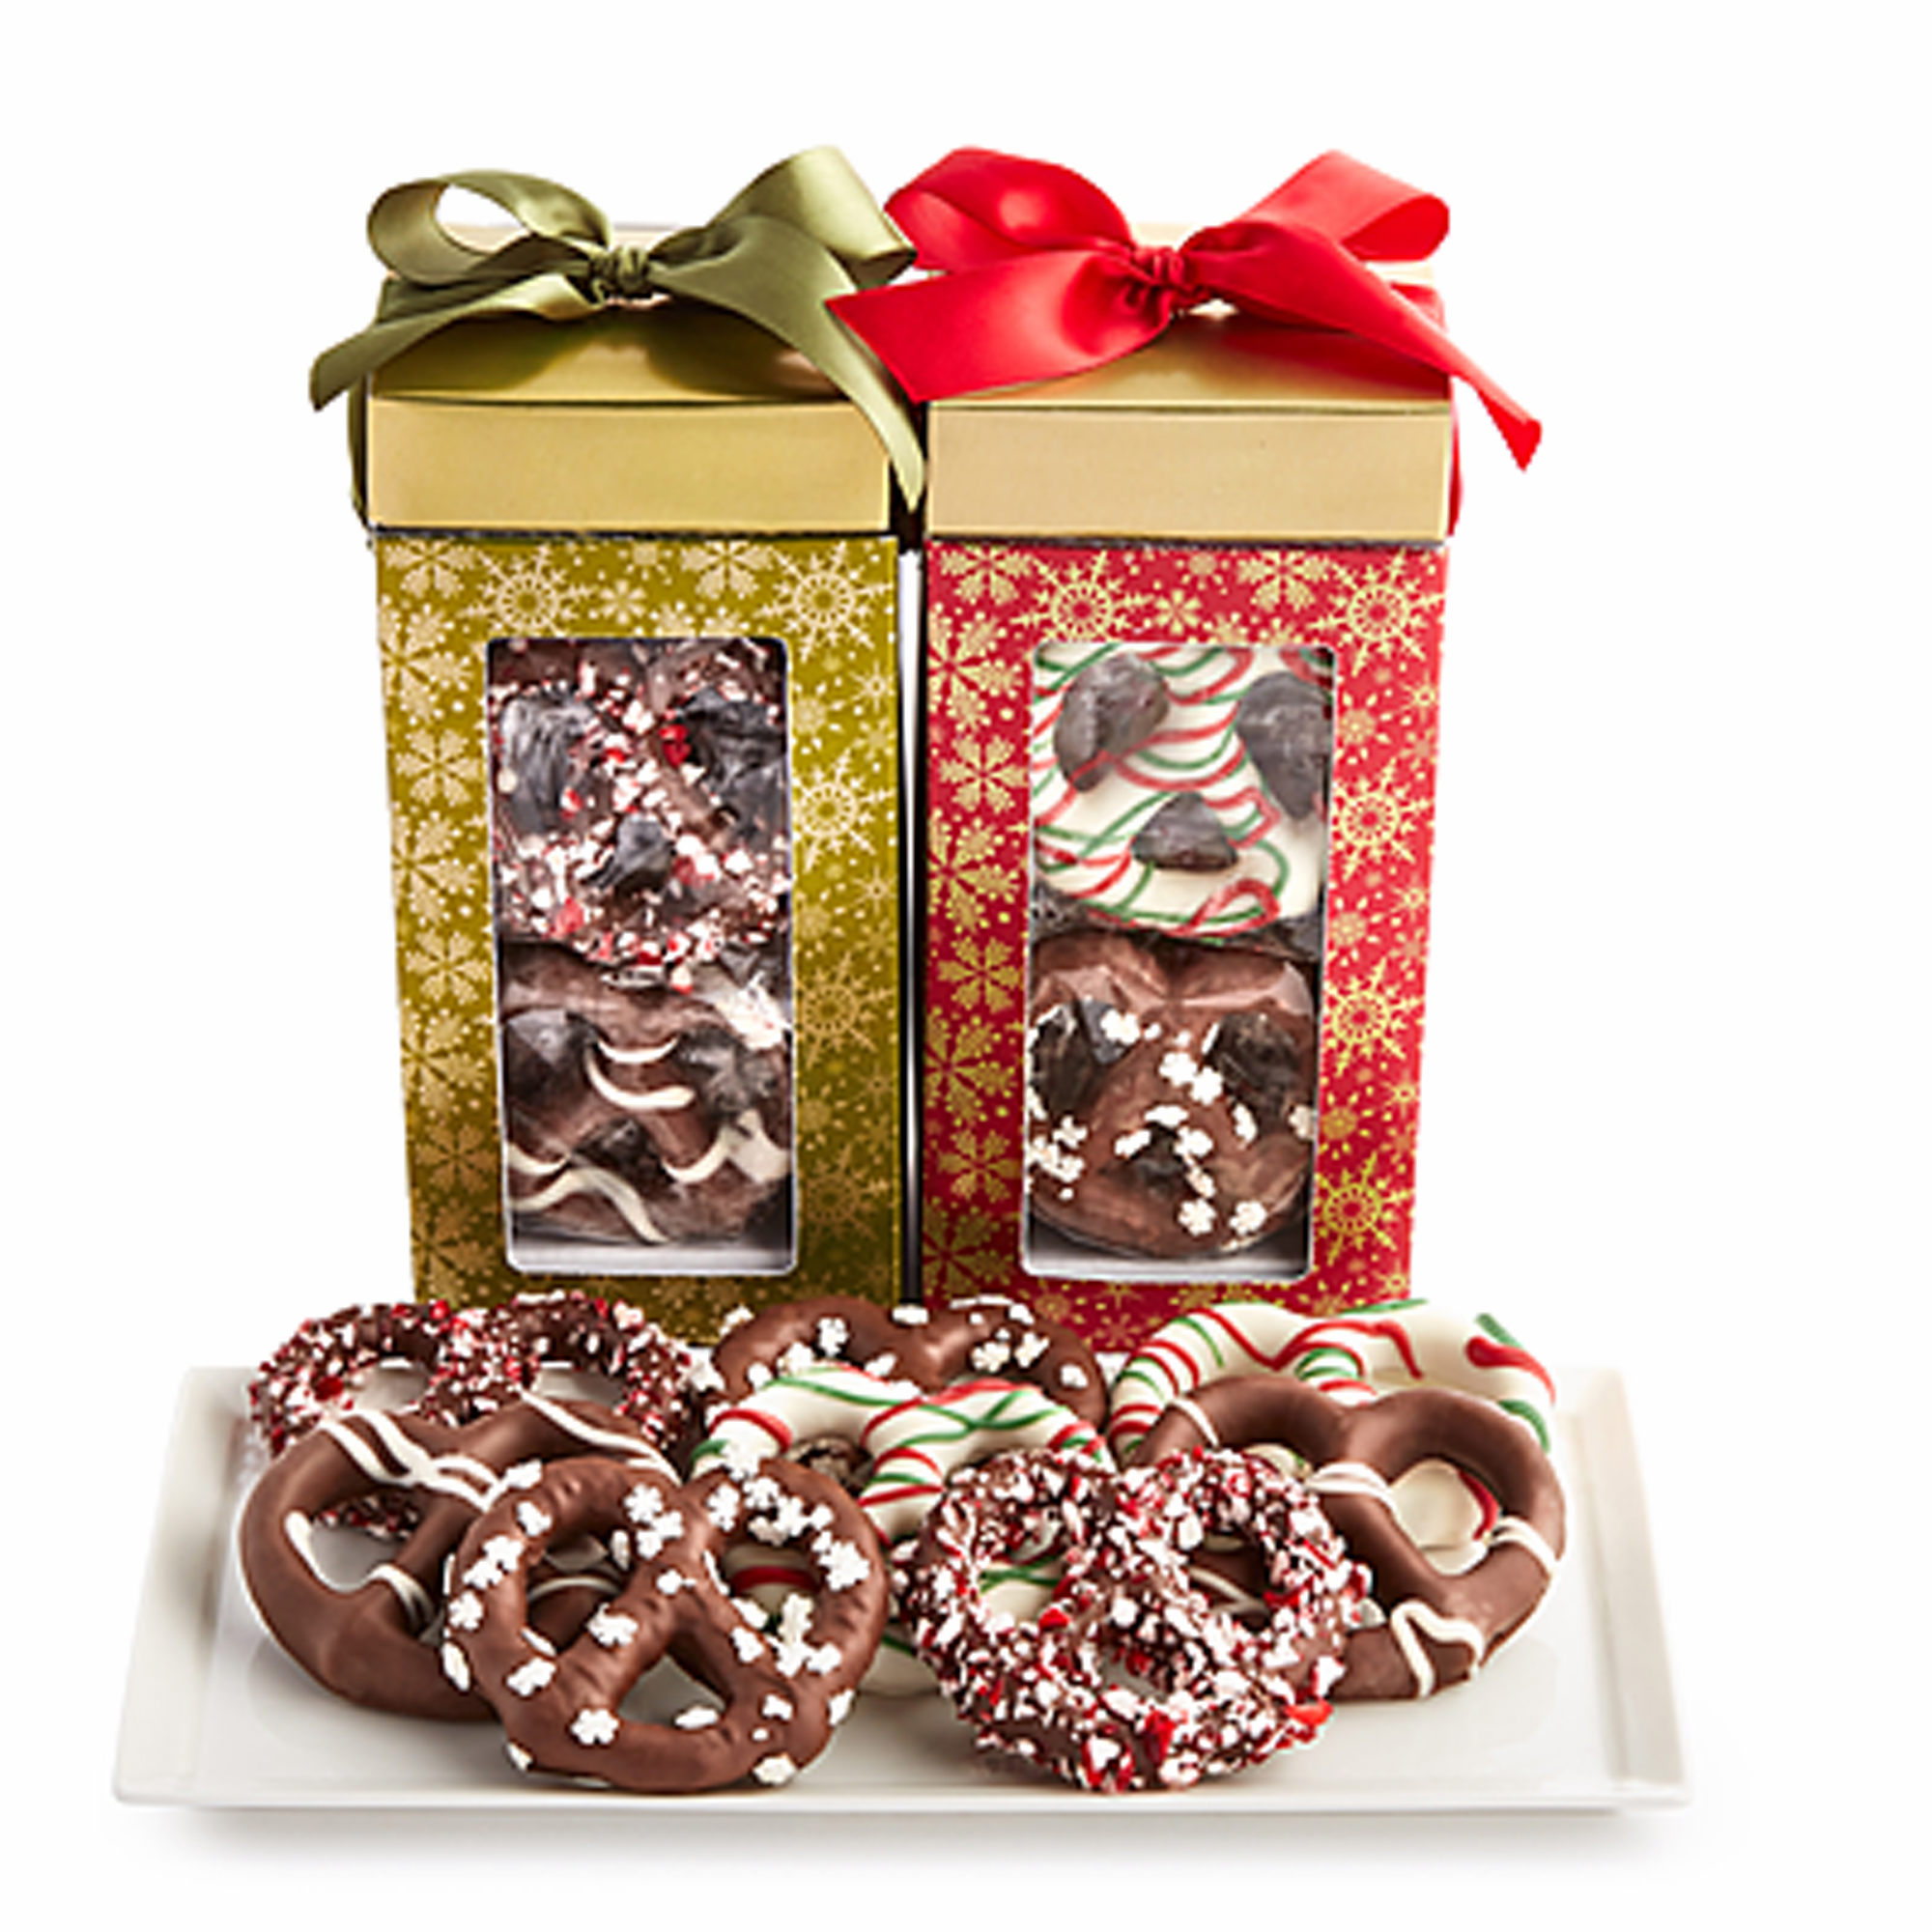 Wellsley Farms Festive Holiday Chocolate-Covered Pretzels